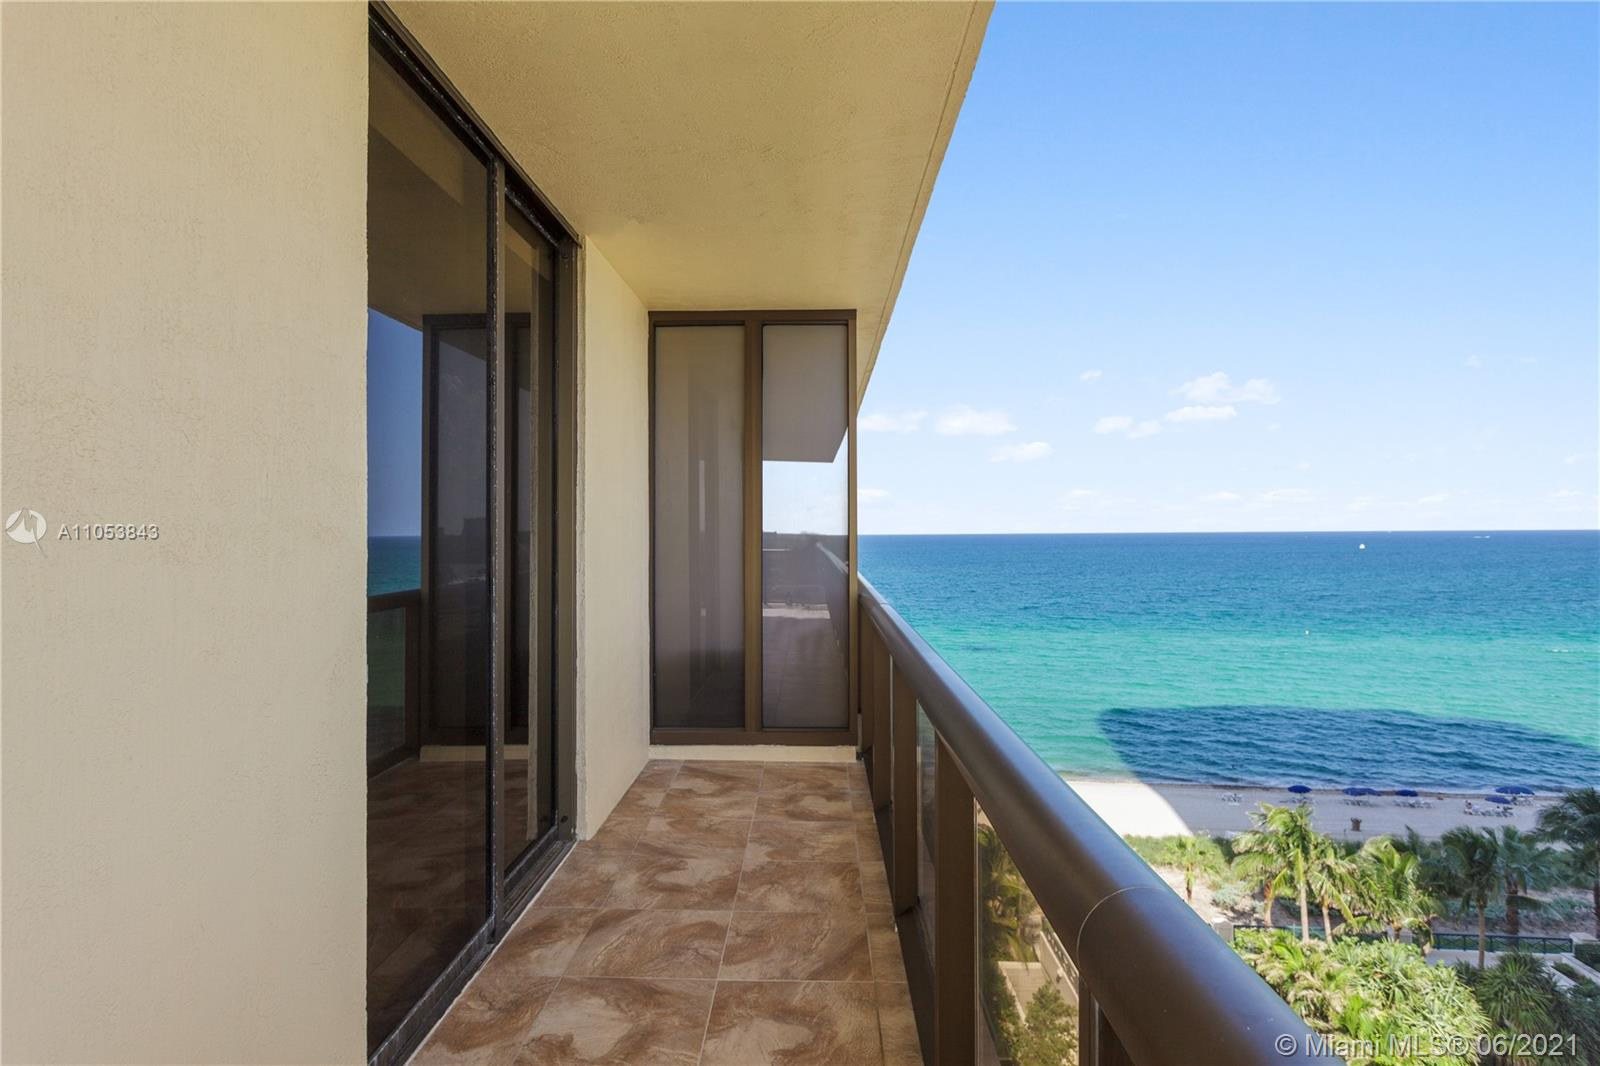 Located in the MOST desirable 04 line at Sayan. Spacious 2 Bed / 2.5 Bath condo with a large wrap-around balcony to enjoy Stunning Ocean & Intracoastal views! High Impact Floor to ceiling windows. Marble floors throughout. Full-service building with beach services: towels, chairs, and umbrellas. Fitness center, 24 hr. concierge & valet. Walking distance to supermarket, Banks, Restaurants, etc.